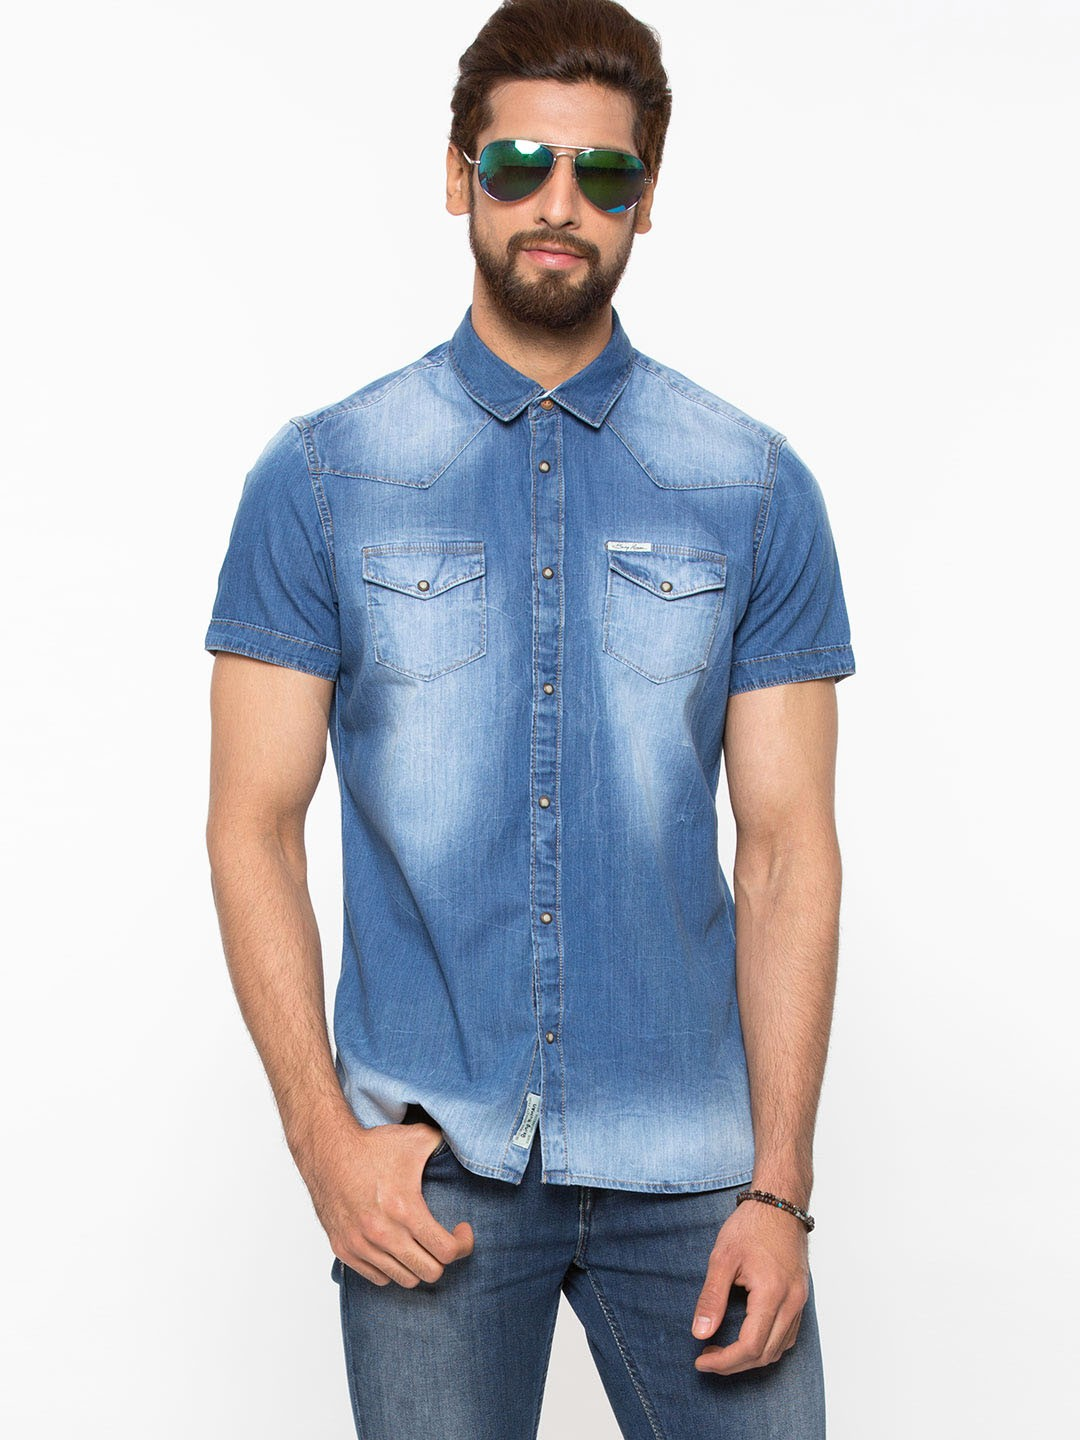 Buy Being Human Half Sleeve Faded Denim Shirt For Men